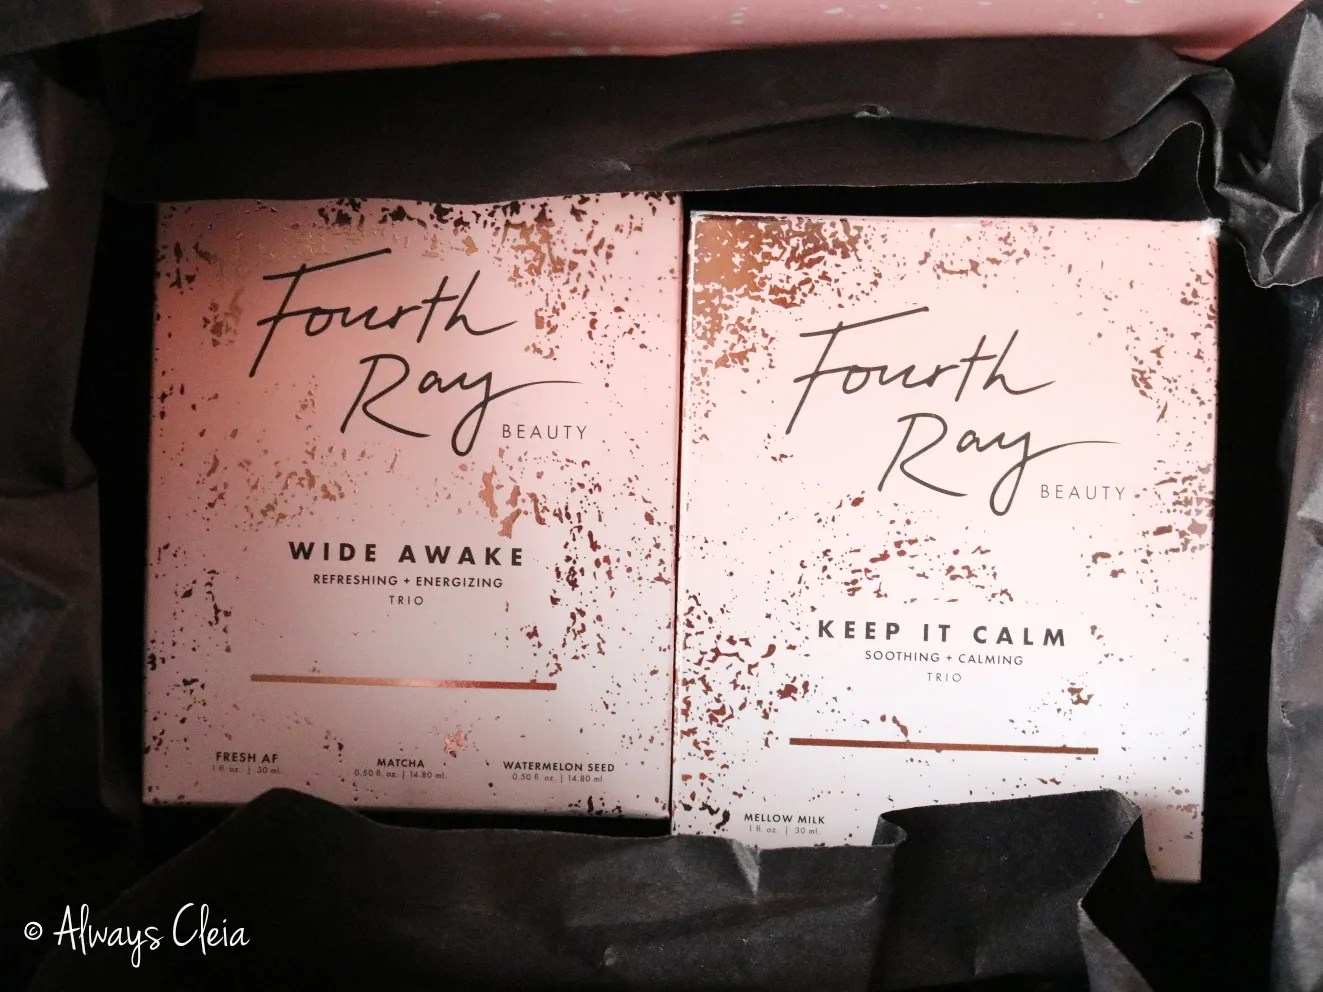 Fourth Ray Beauty Haul Packaging